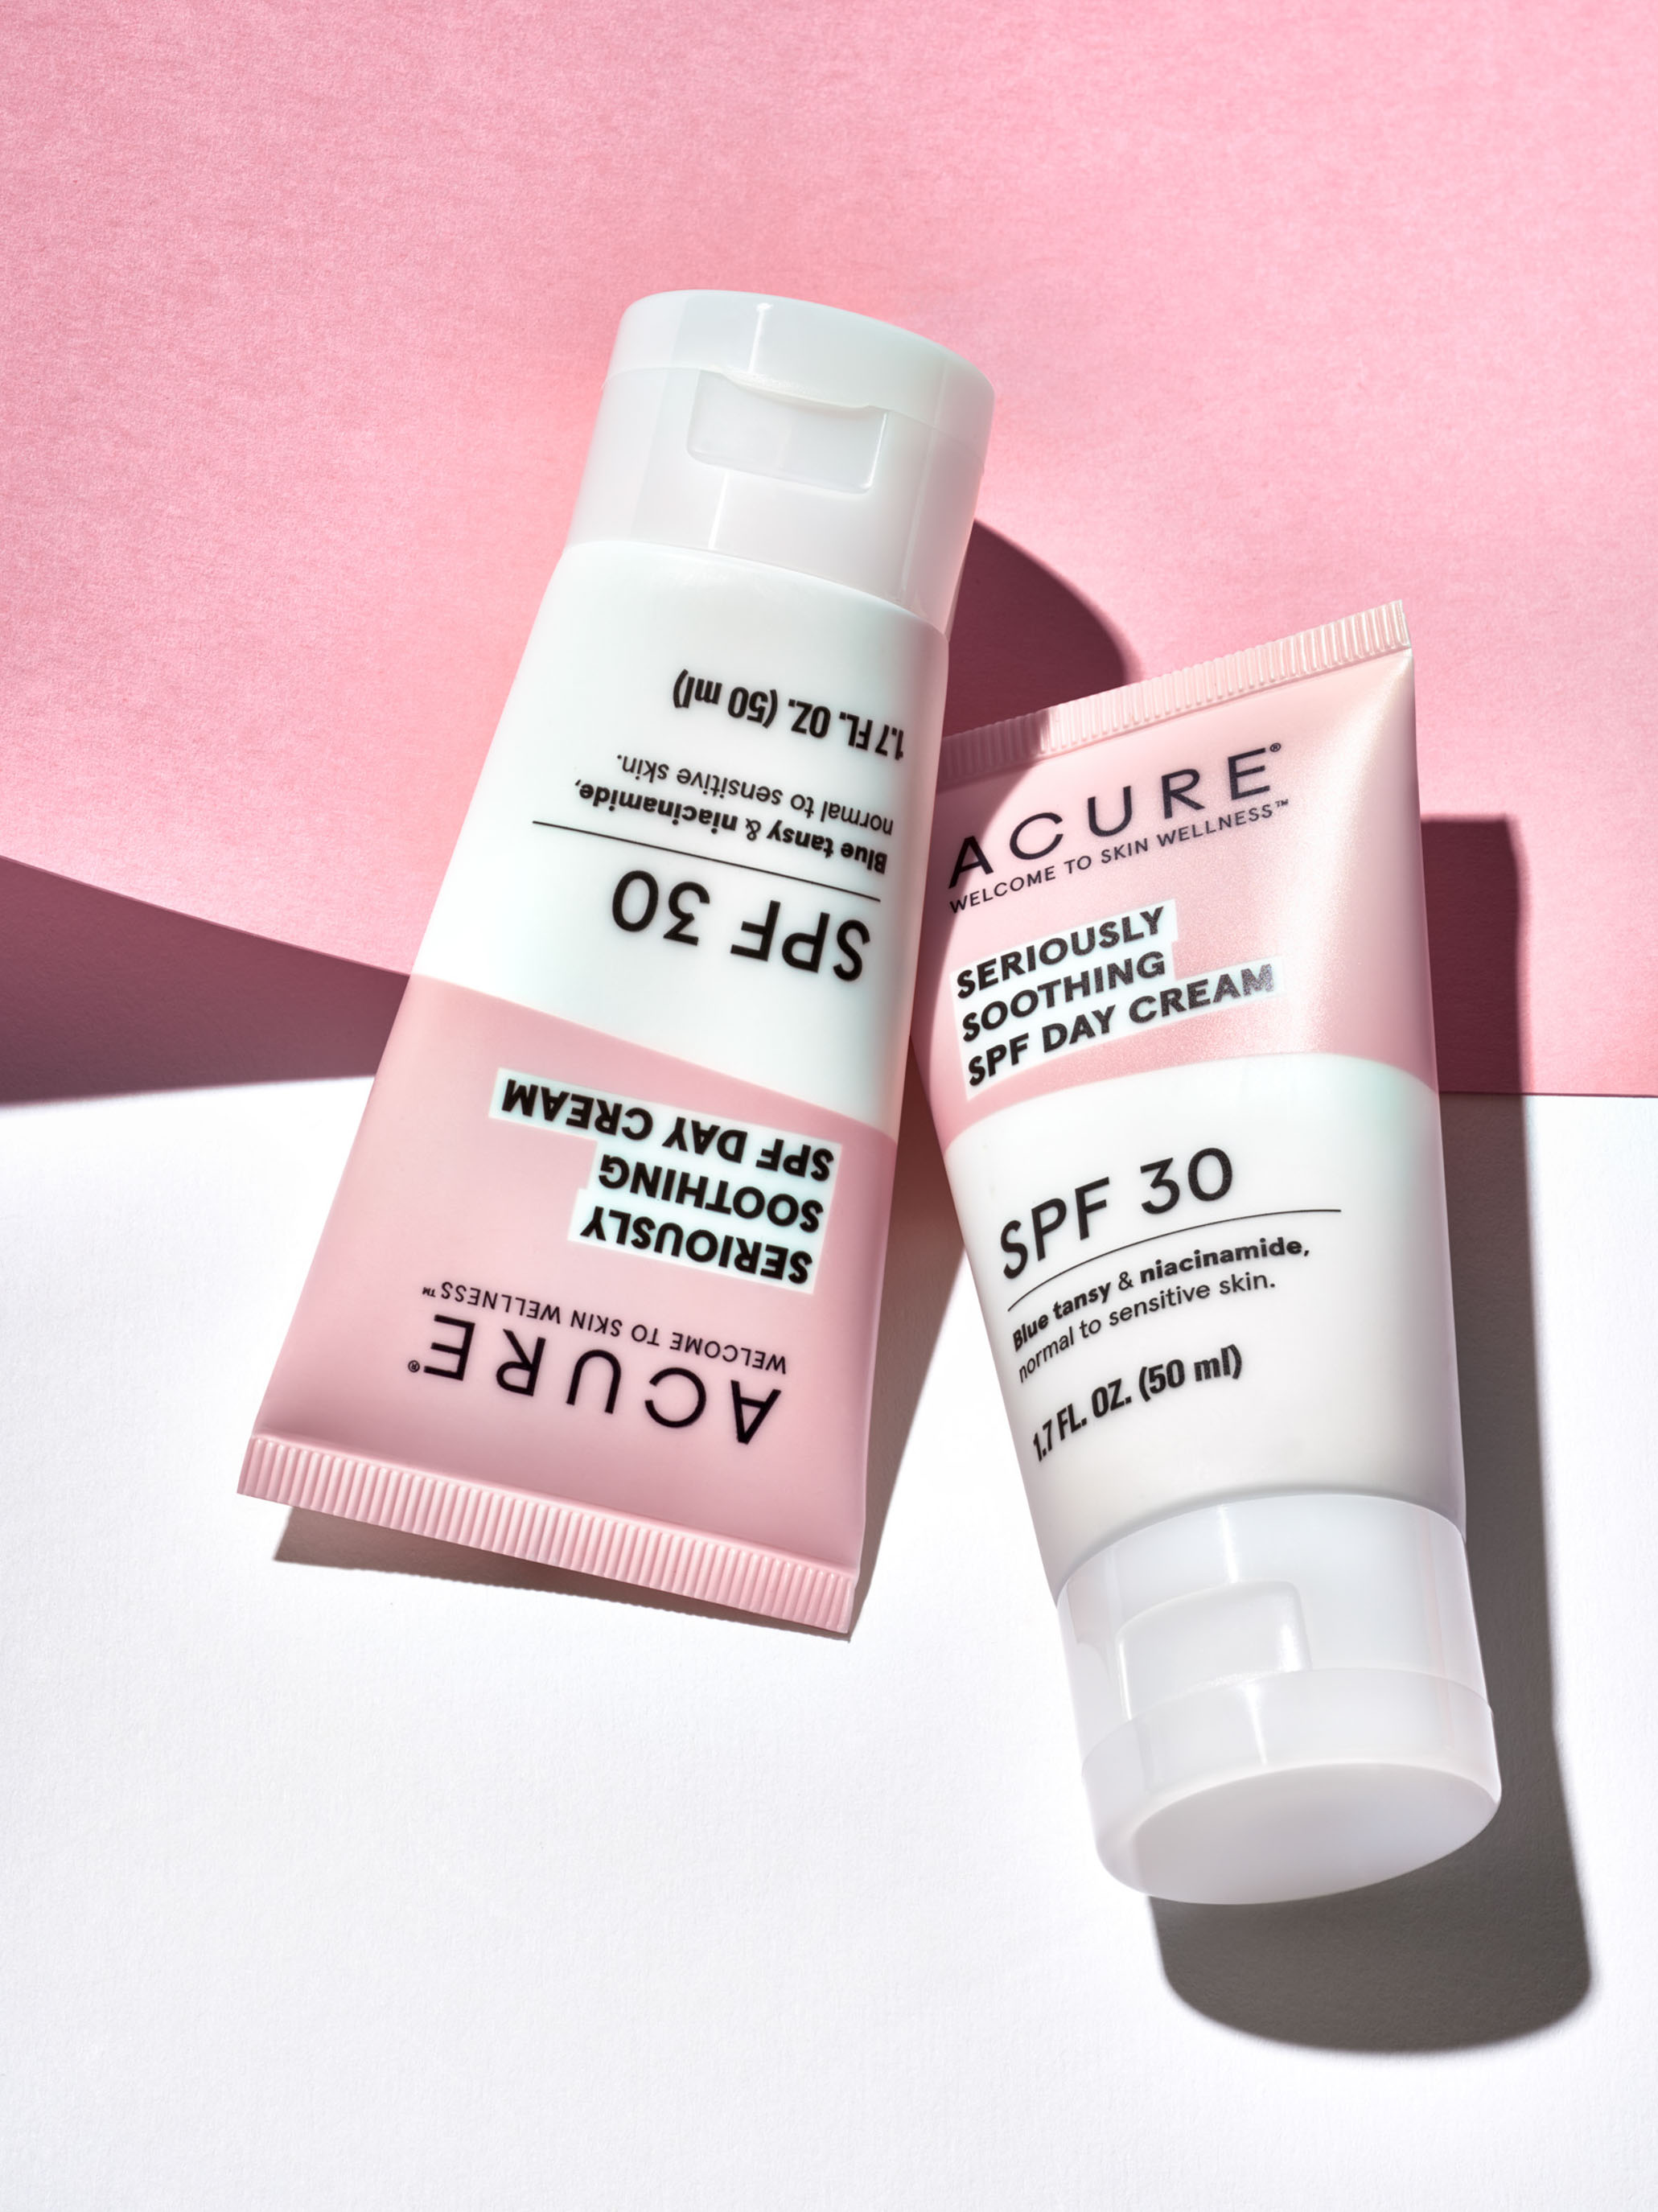 STAN Acure Product Still Life SPF Day Cream